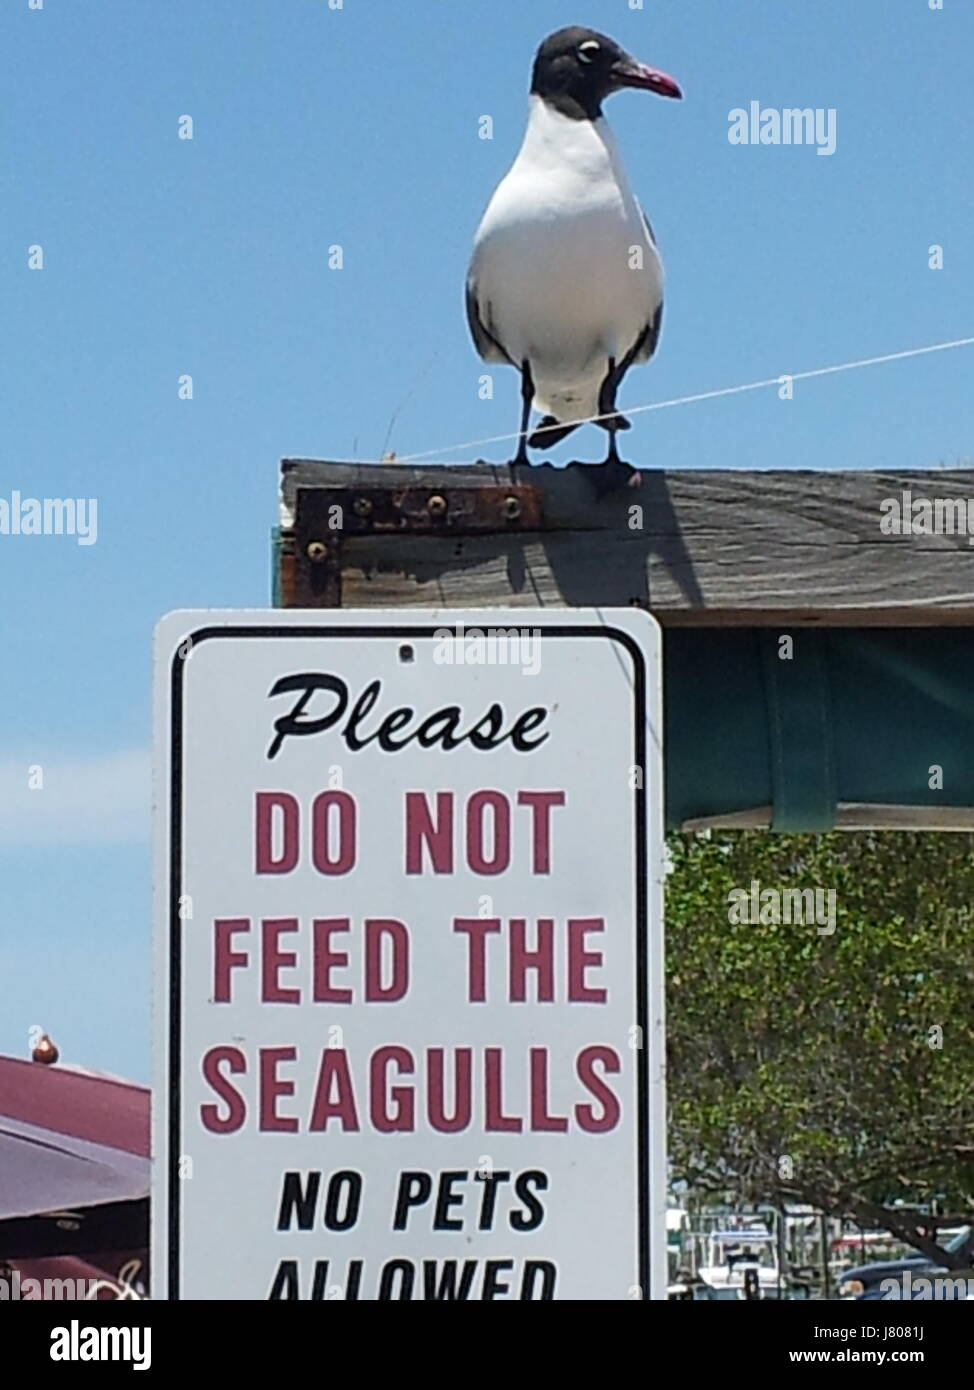 Do Not Feed The Seagulls Stock Photo